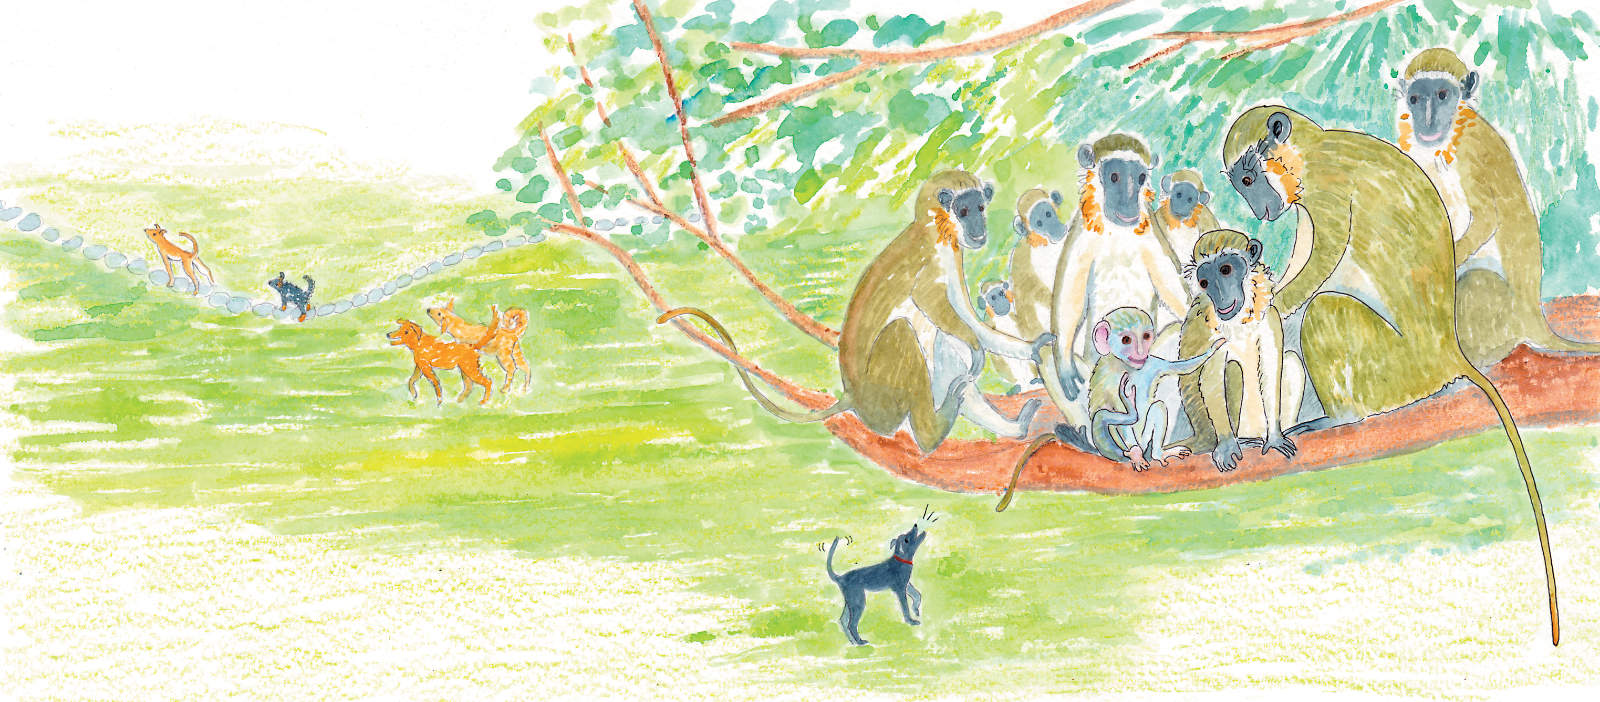 Monkeys with dogs below